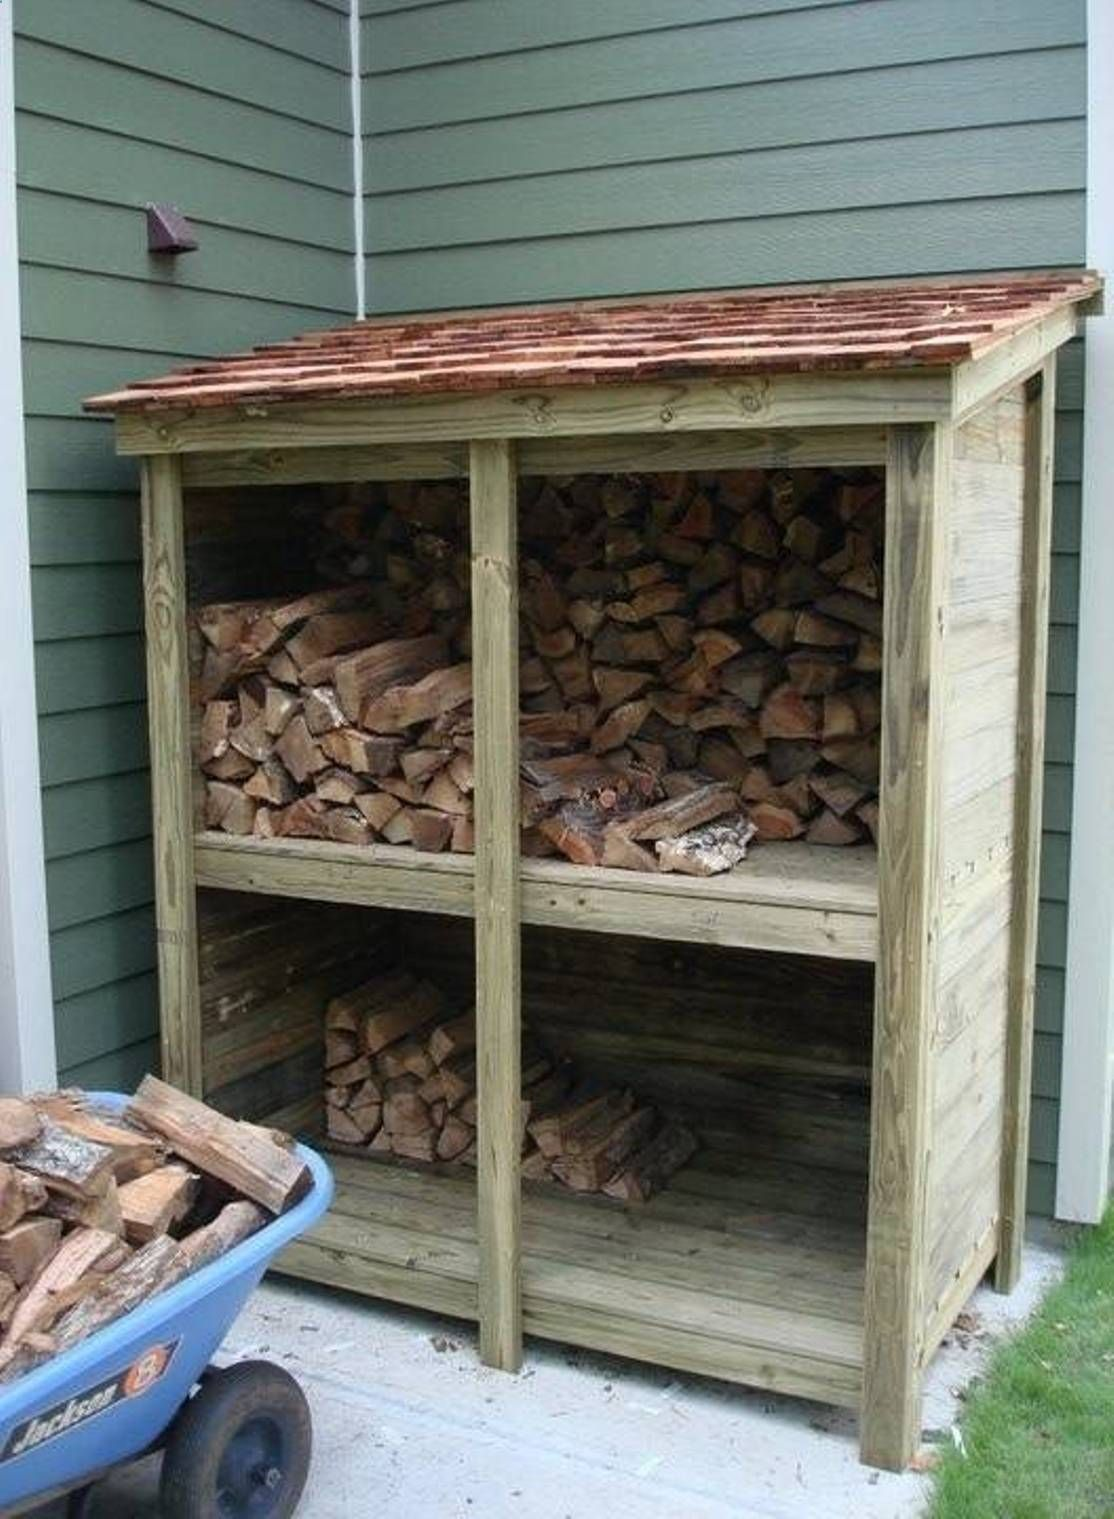 Shed Plans - My Shed Plans - Storage And Organization , Firewood Shed Storage : Vintage Small Side Firewood Shed - Now You Can Build ANY Shed In A Weekend Even If Youve Zero Woodworking Experience! - Now You Can Build ANY Shed In A Weekend Even If You've Zero Woodworking Experience!